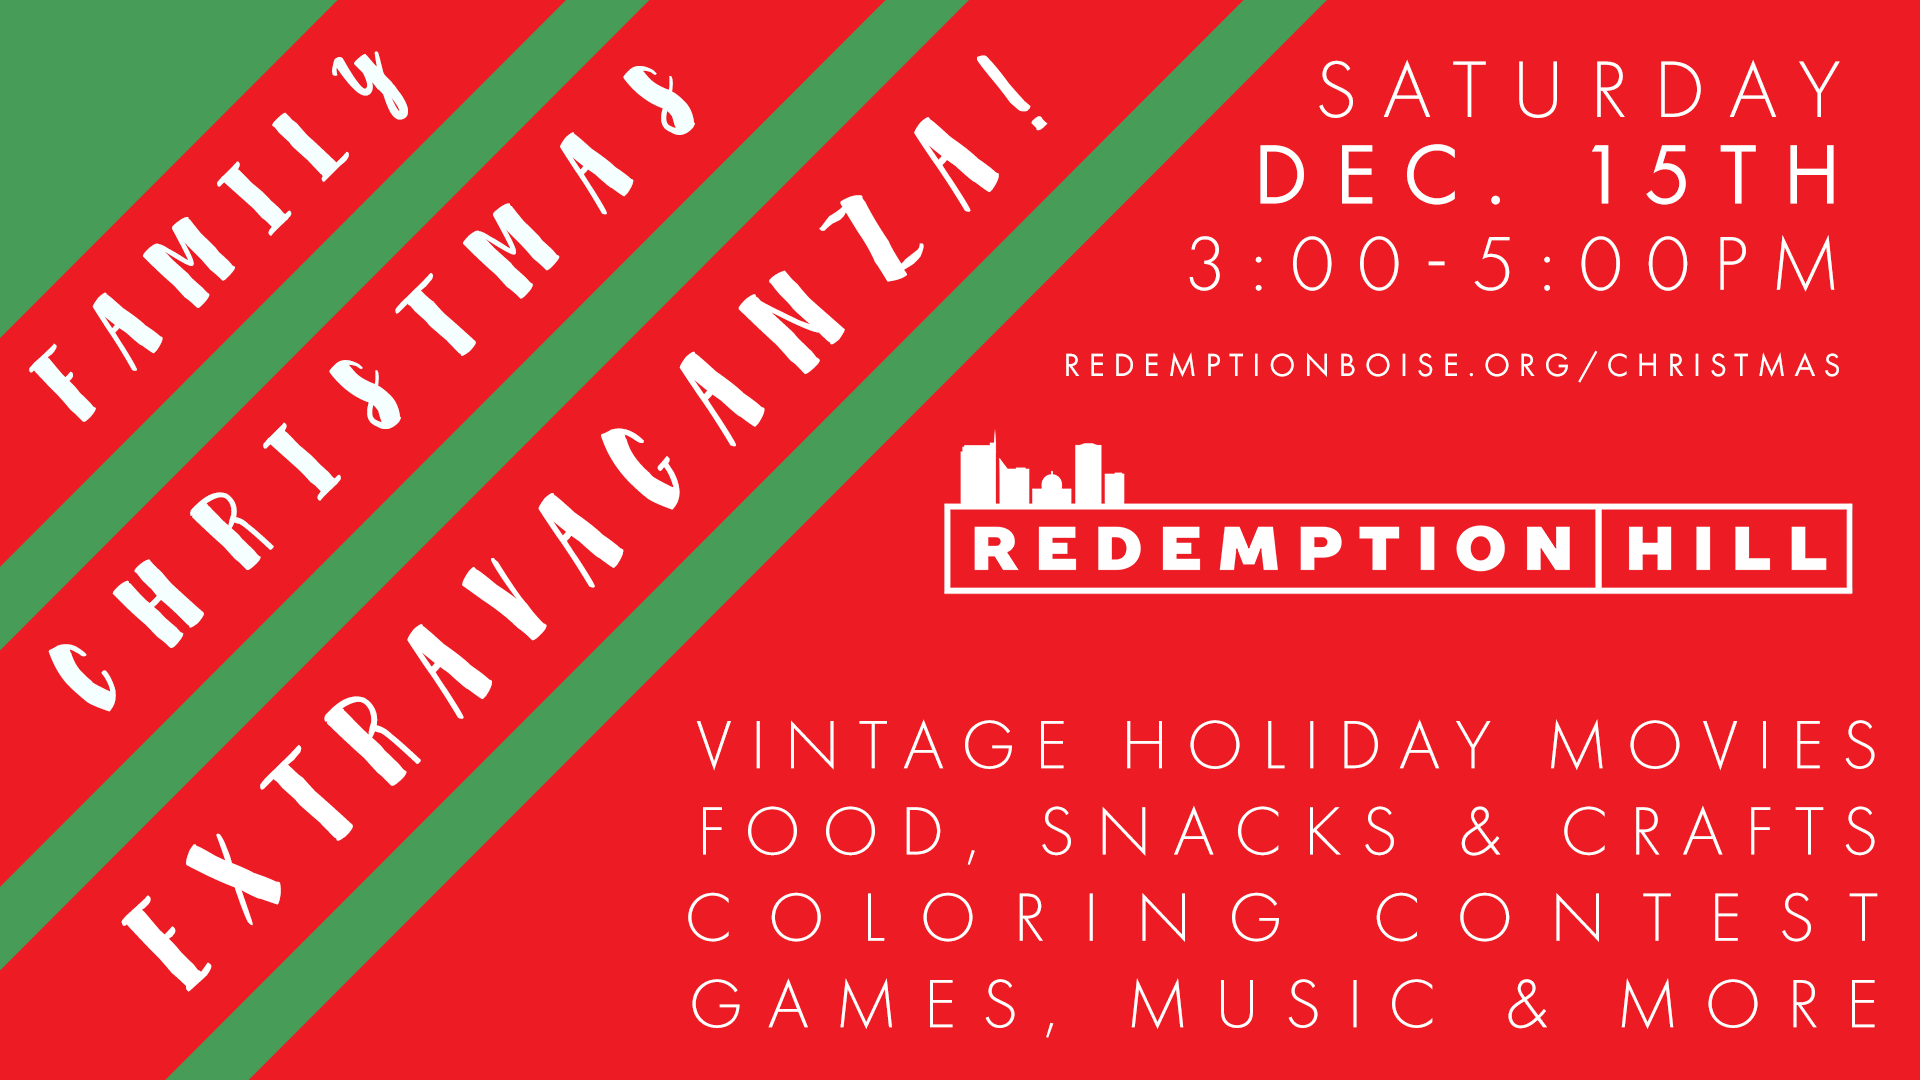 Free Family Christmas Extravaganza at Redemption Hill - A family friendly indoor event with vintage holiday movies, food, crafts, coloring, games, music and more.....and it's all free!7751 W Goddard Rd. BoiseDecember 15th, 3-5pmKids of all agessend us your questions: info@redemptionboise.org